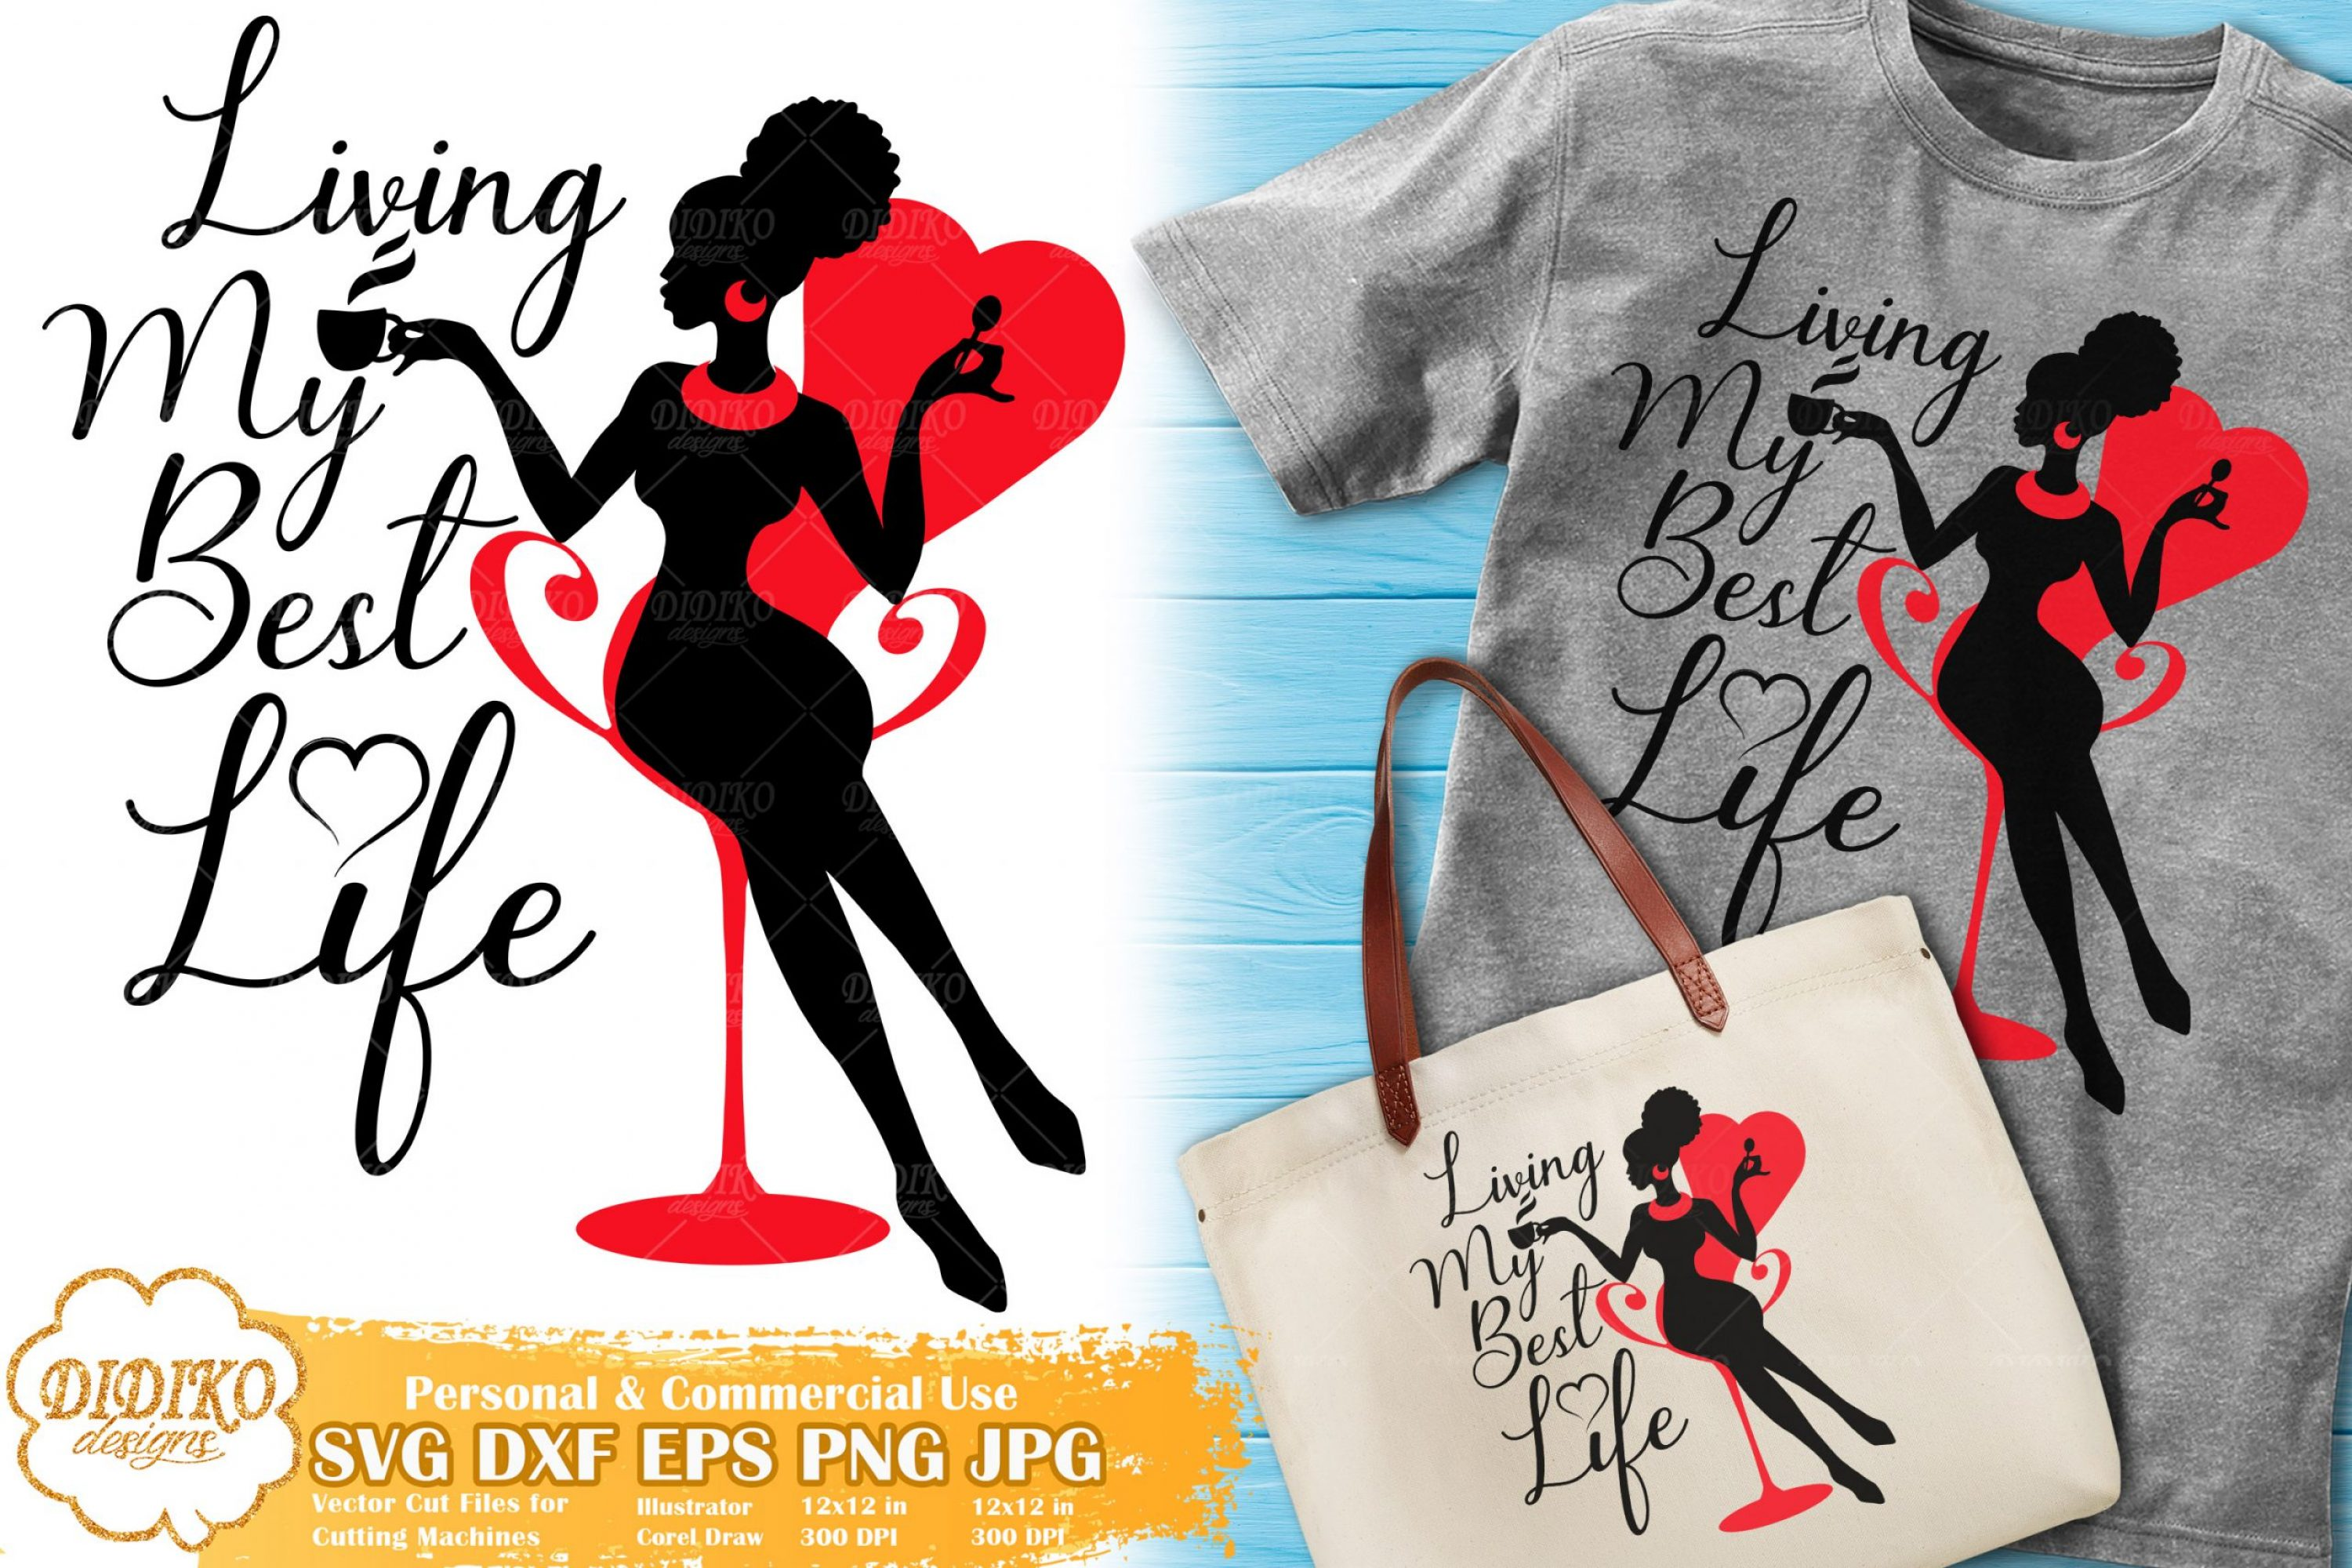 Living My Best Life SVG | Black Woman | Boss Lady Svg